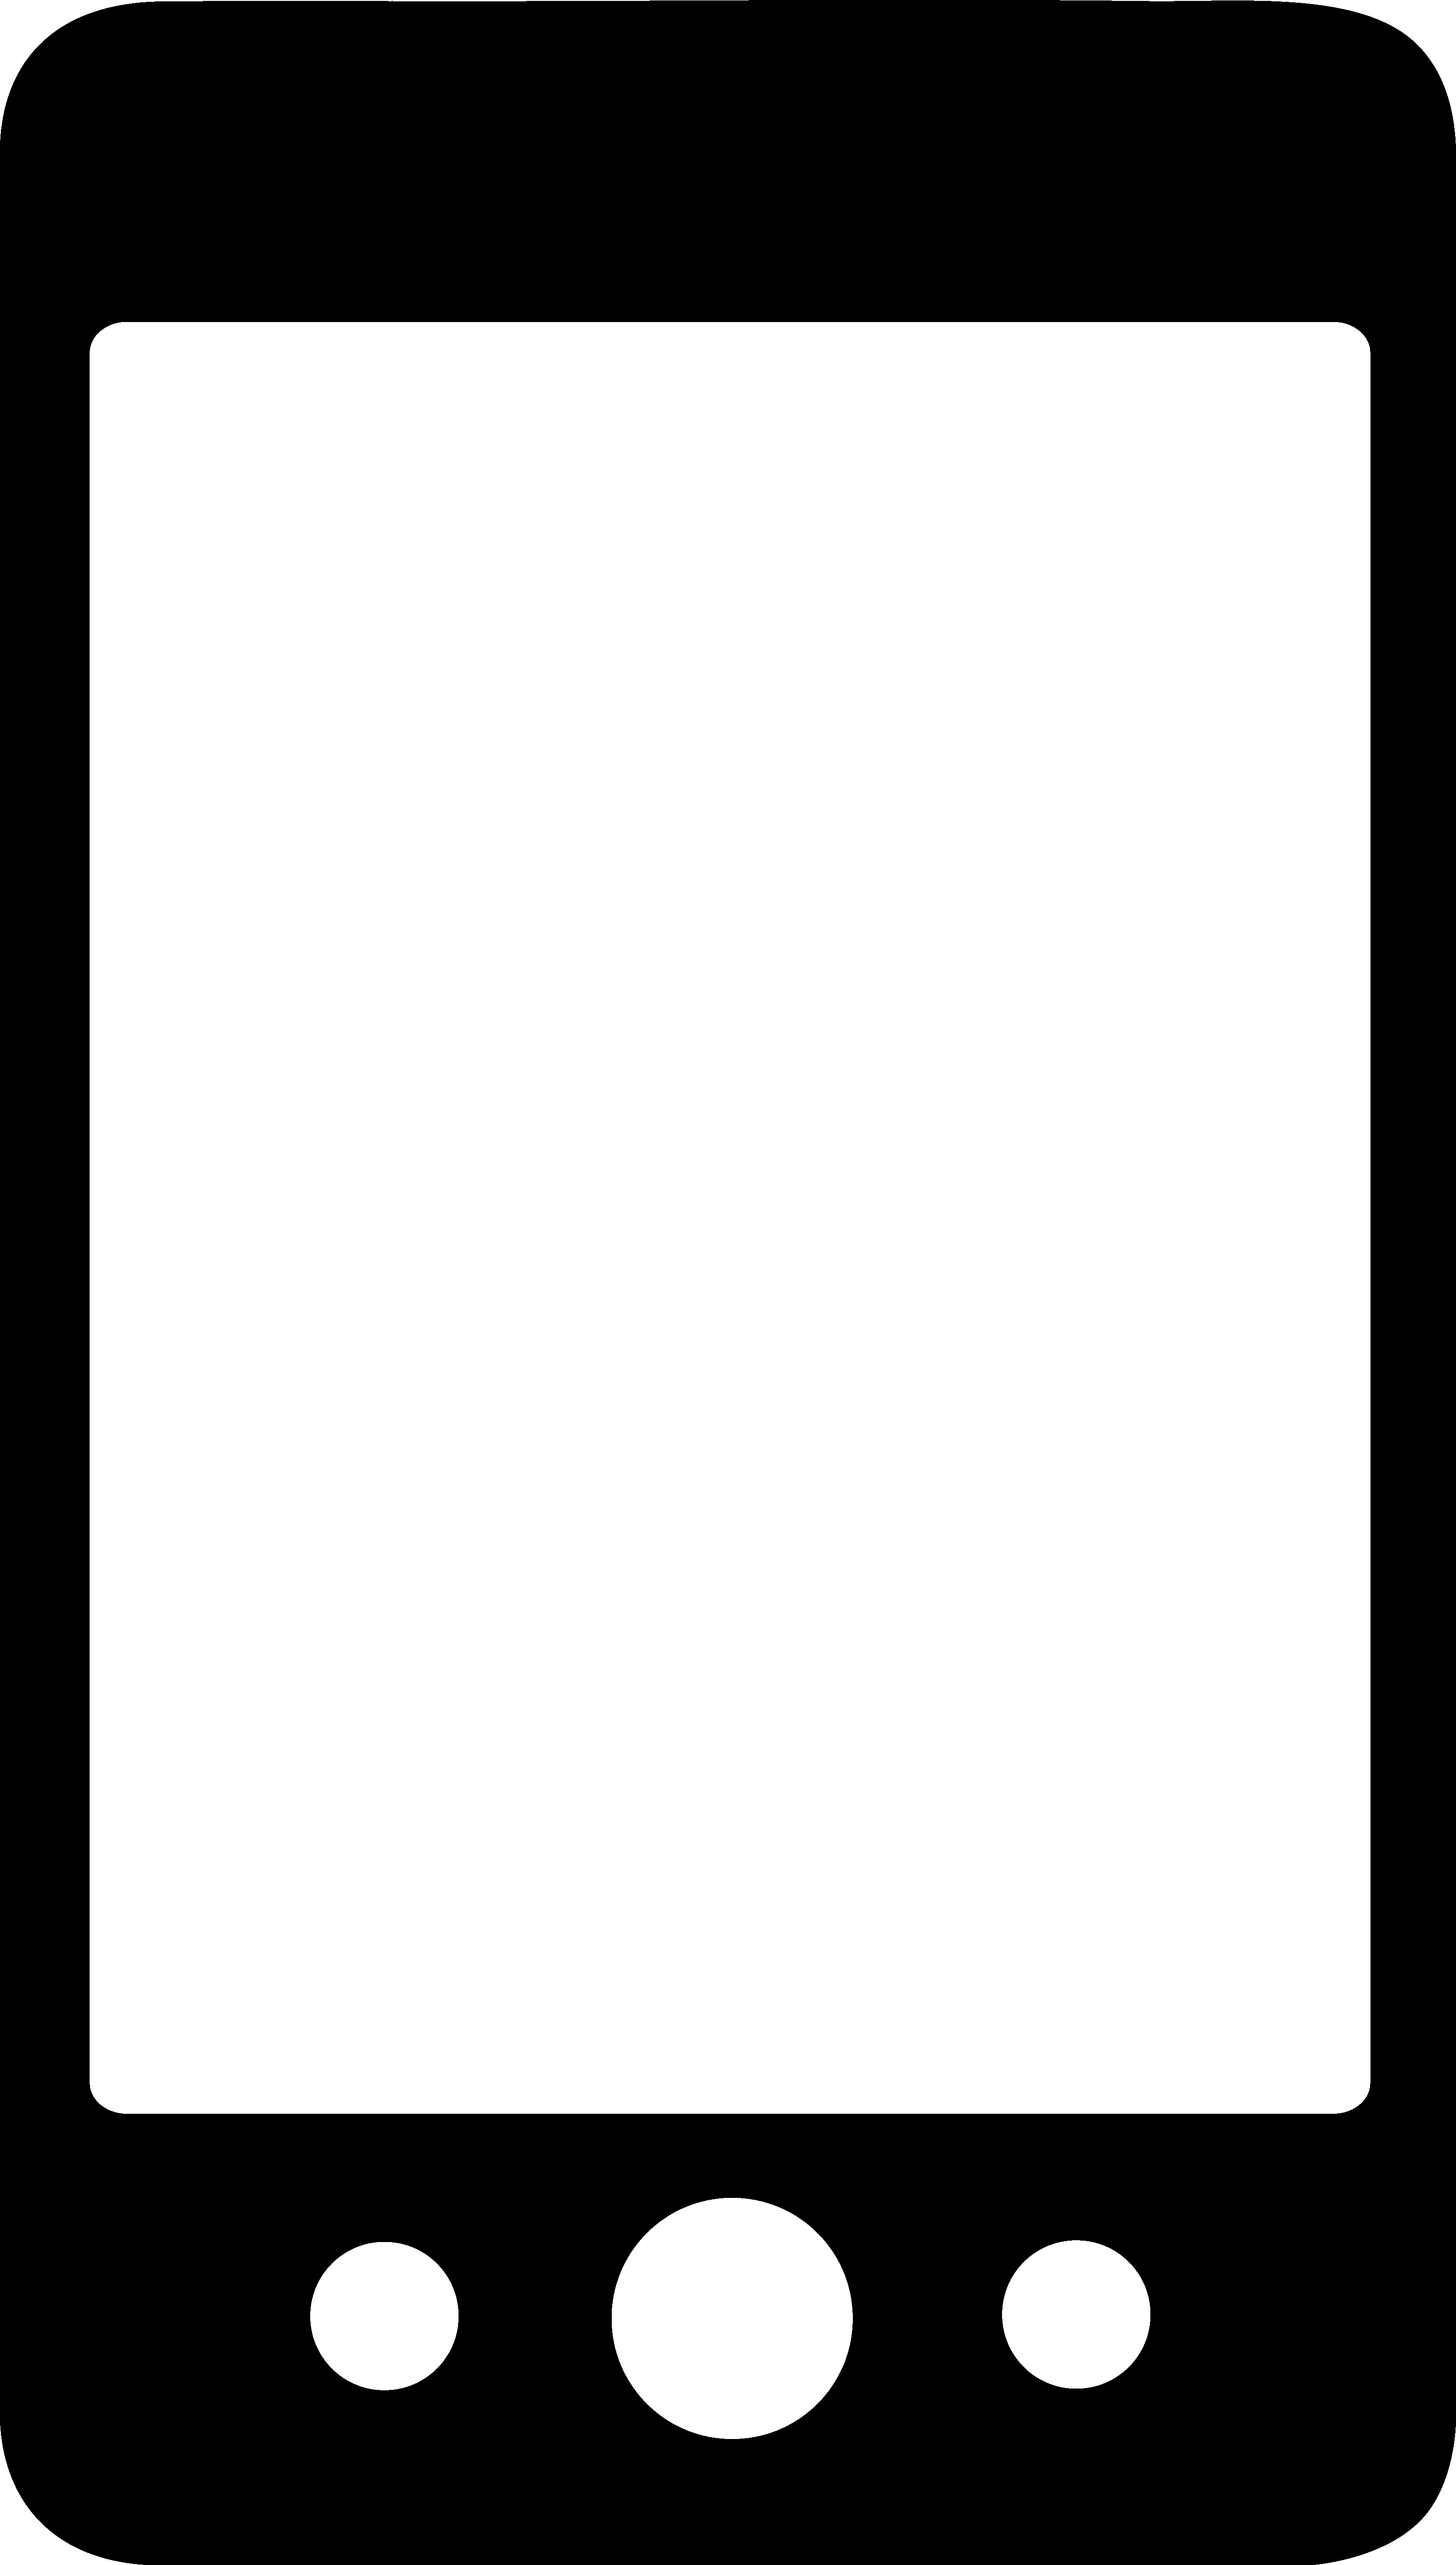 3201x5639 Iphone Clipart Black And White